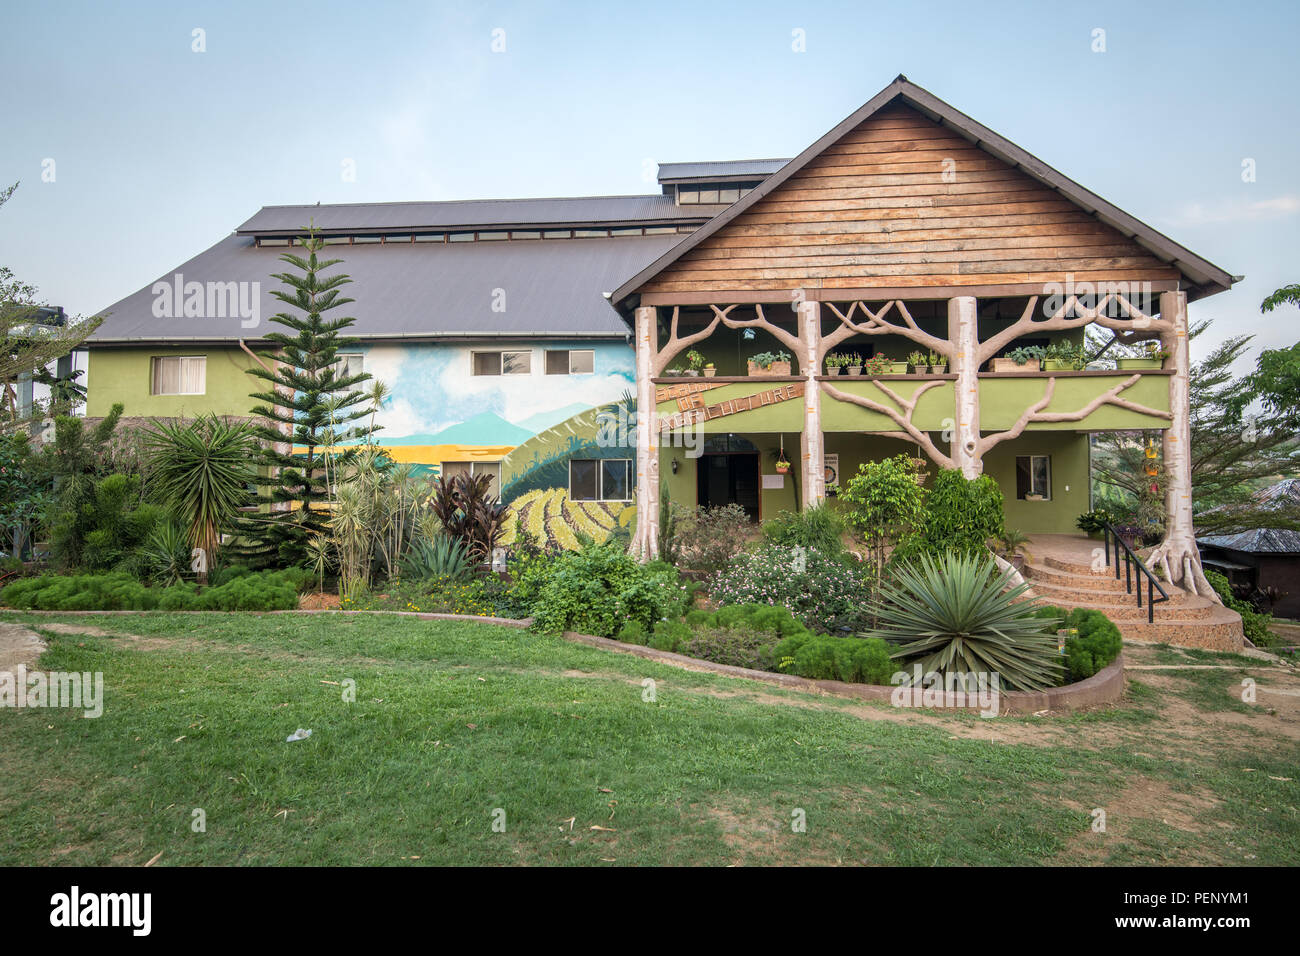 An image of the school of Agriculture in Ganta,Liberia - Stock Image